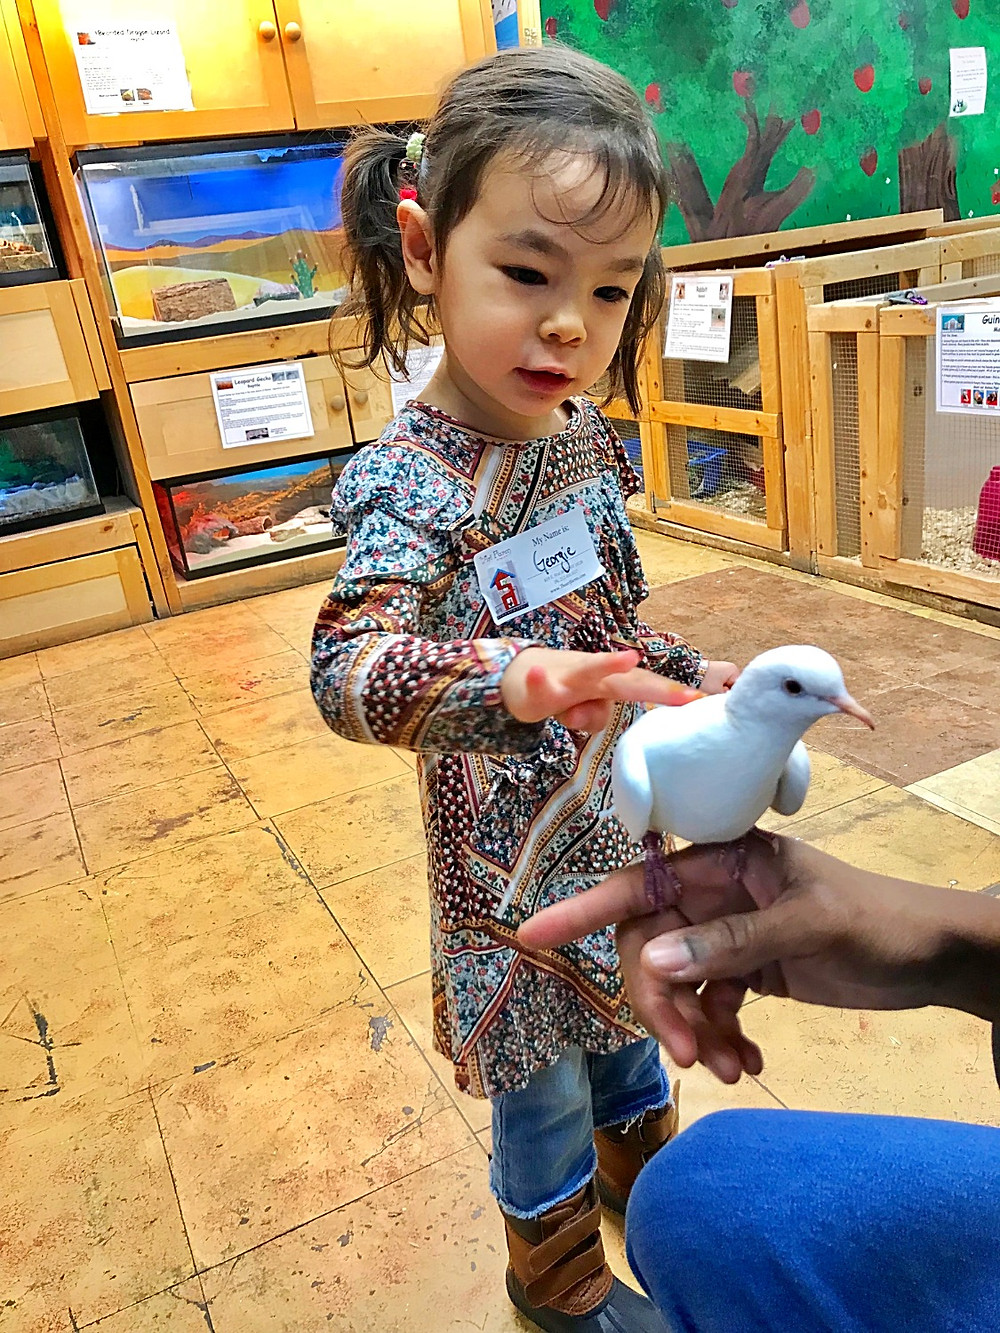 Art Farm in the City, indoor petting zoos in NYC, Curious G and Me, NYC Indoor fun for kids, best play spaces for NYC kids